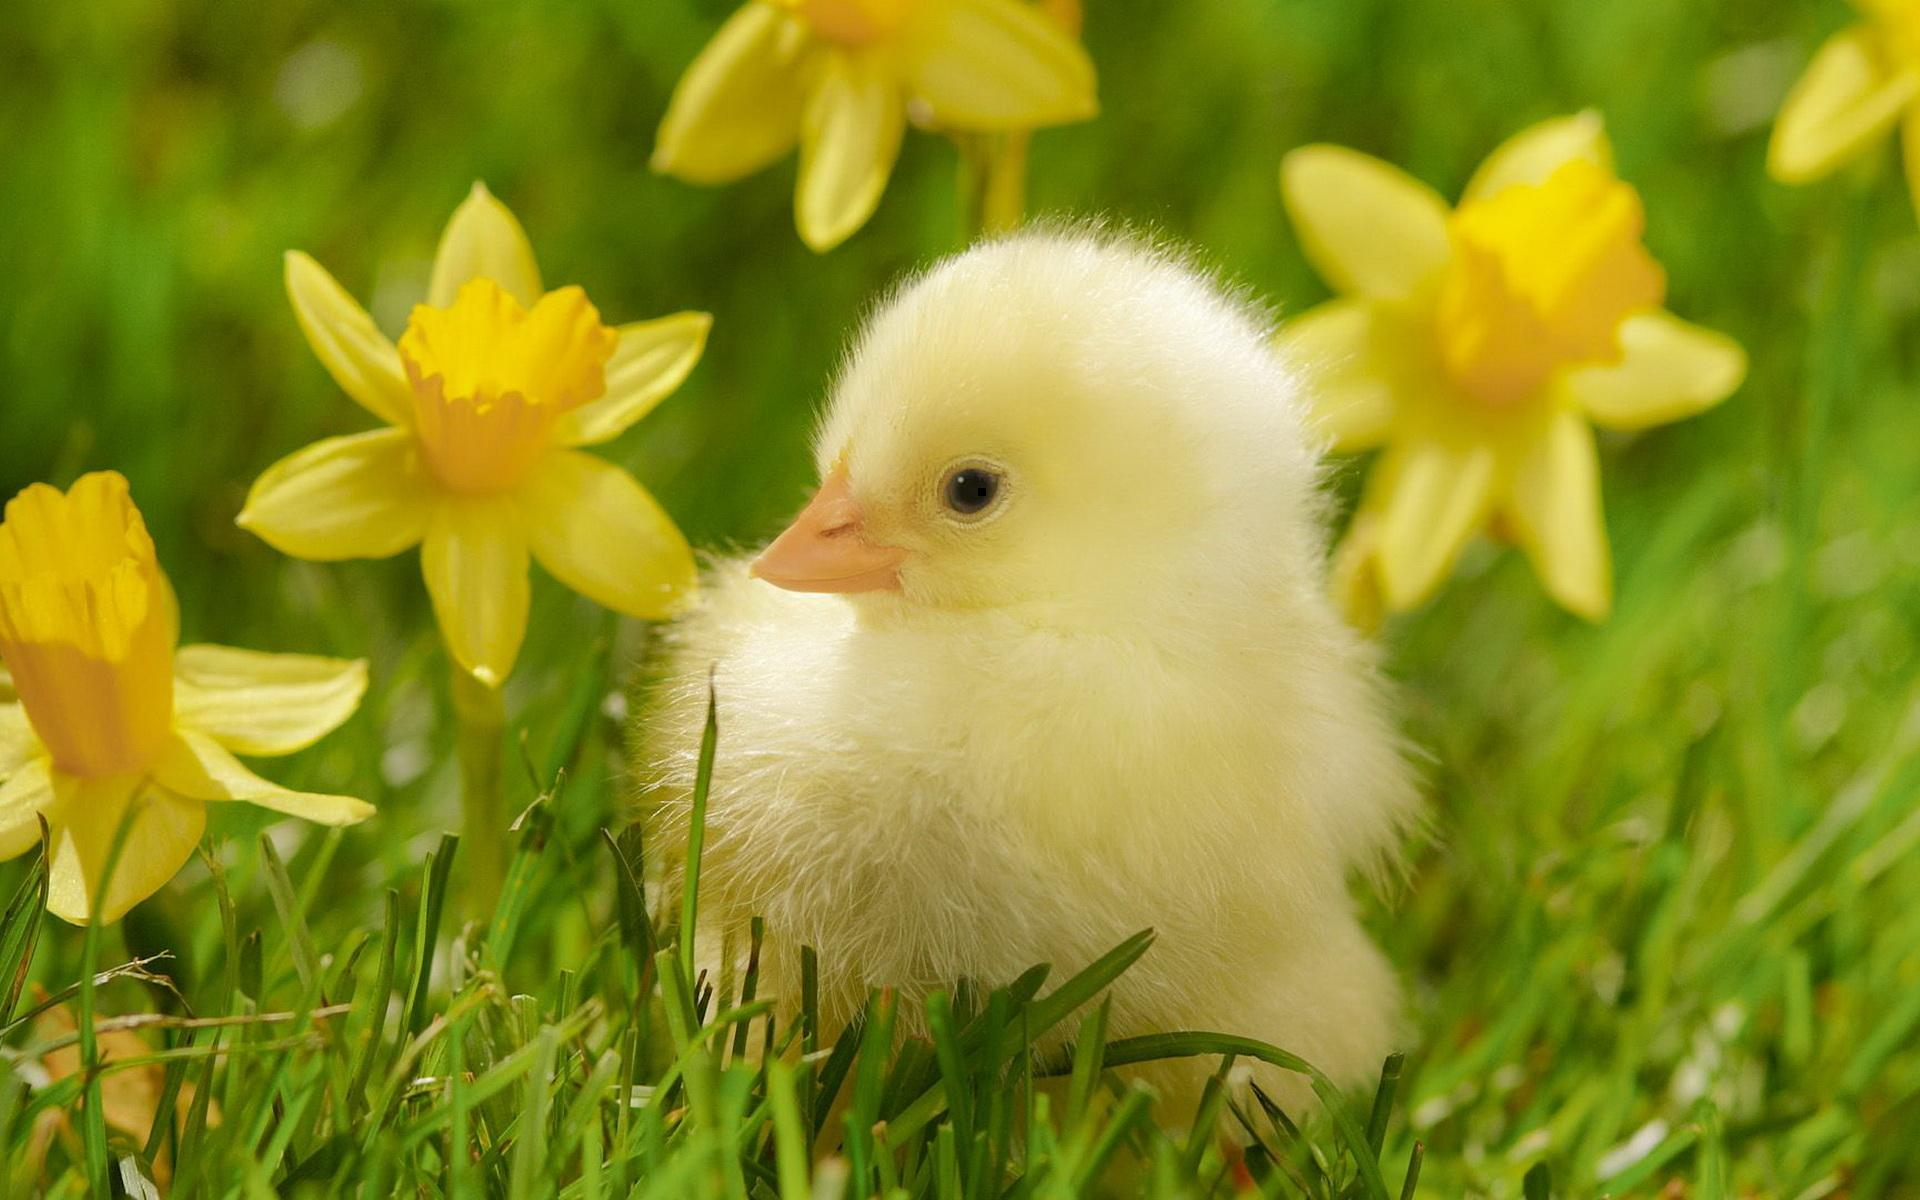 free photo: cute duckling - nature, wild, duckling - free download